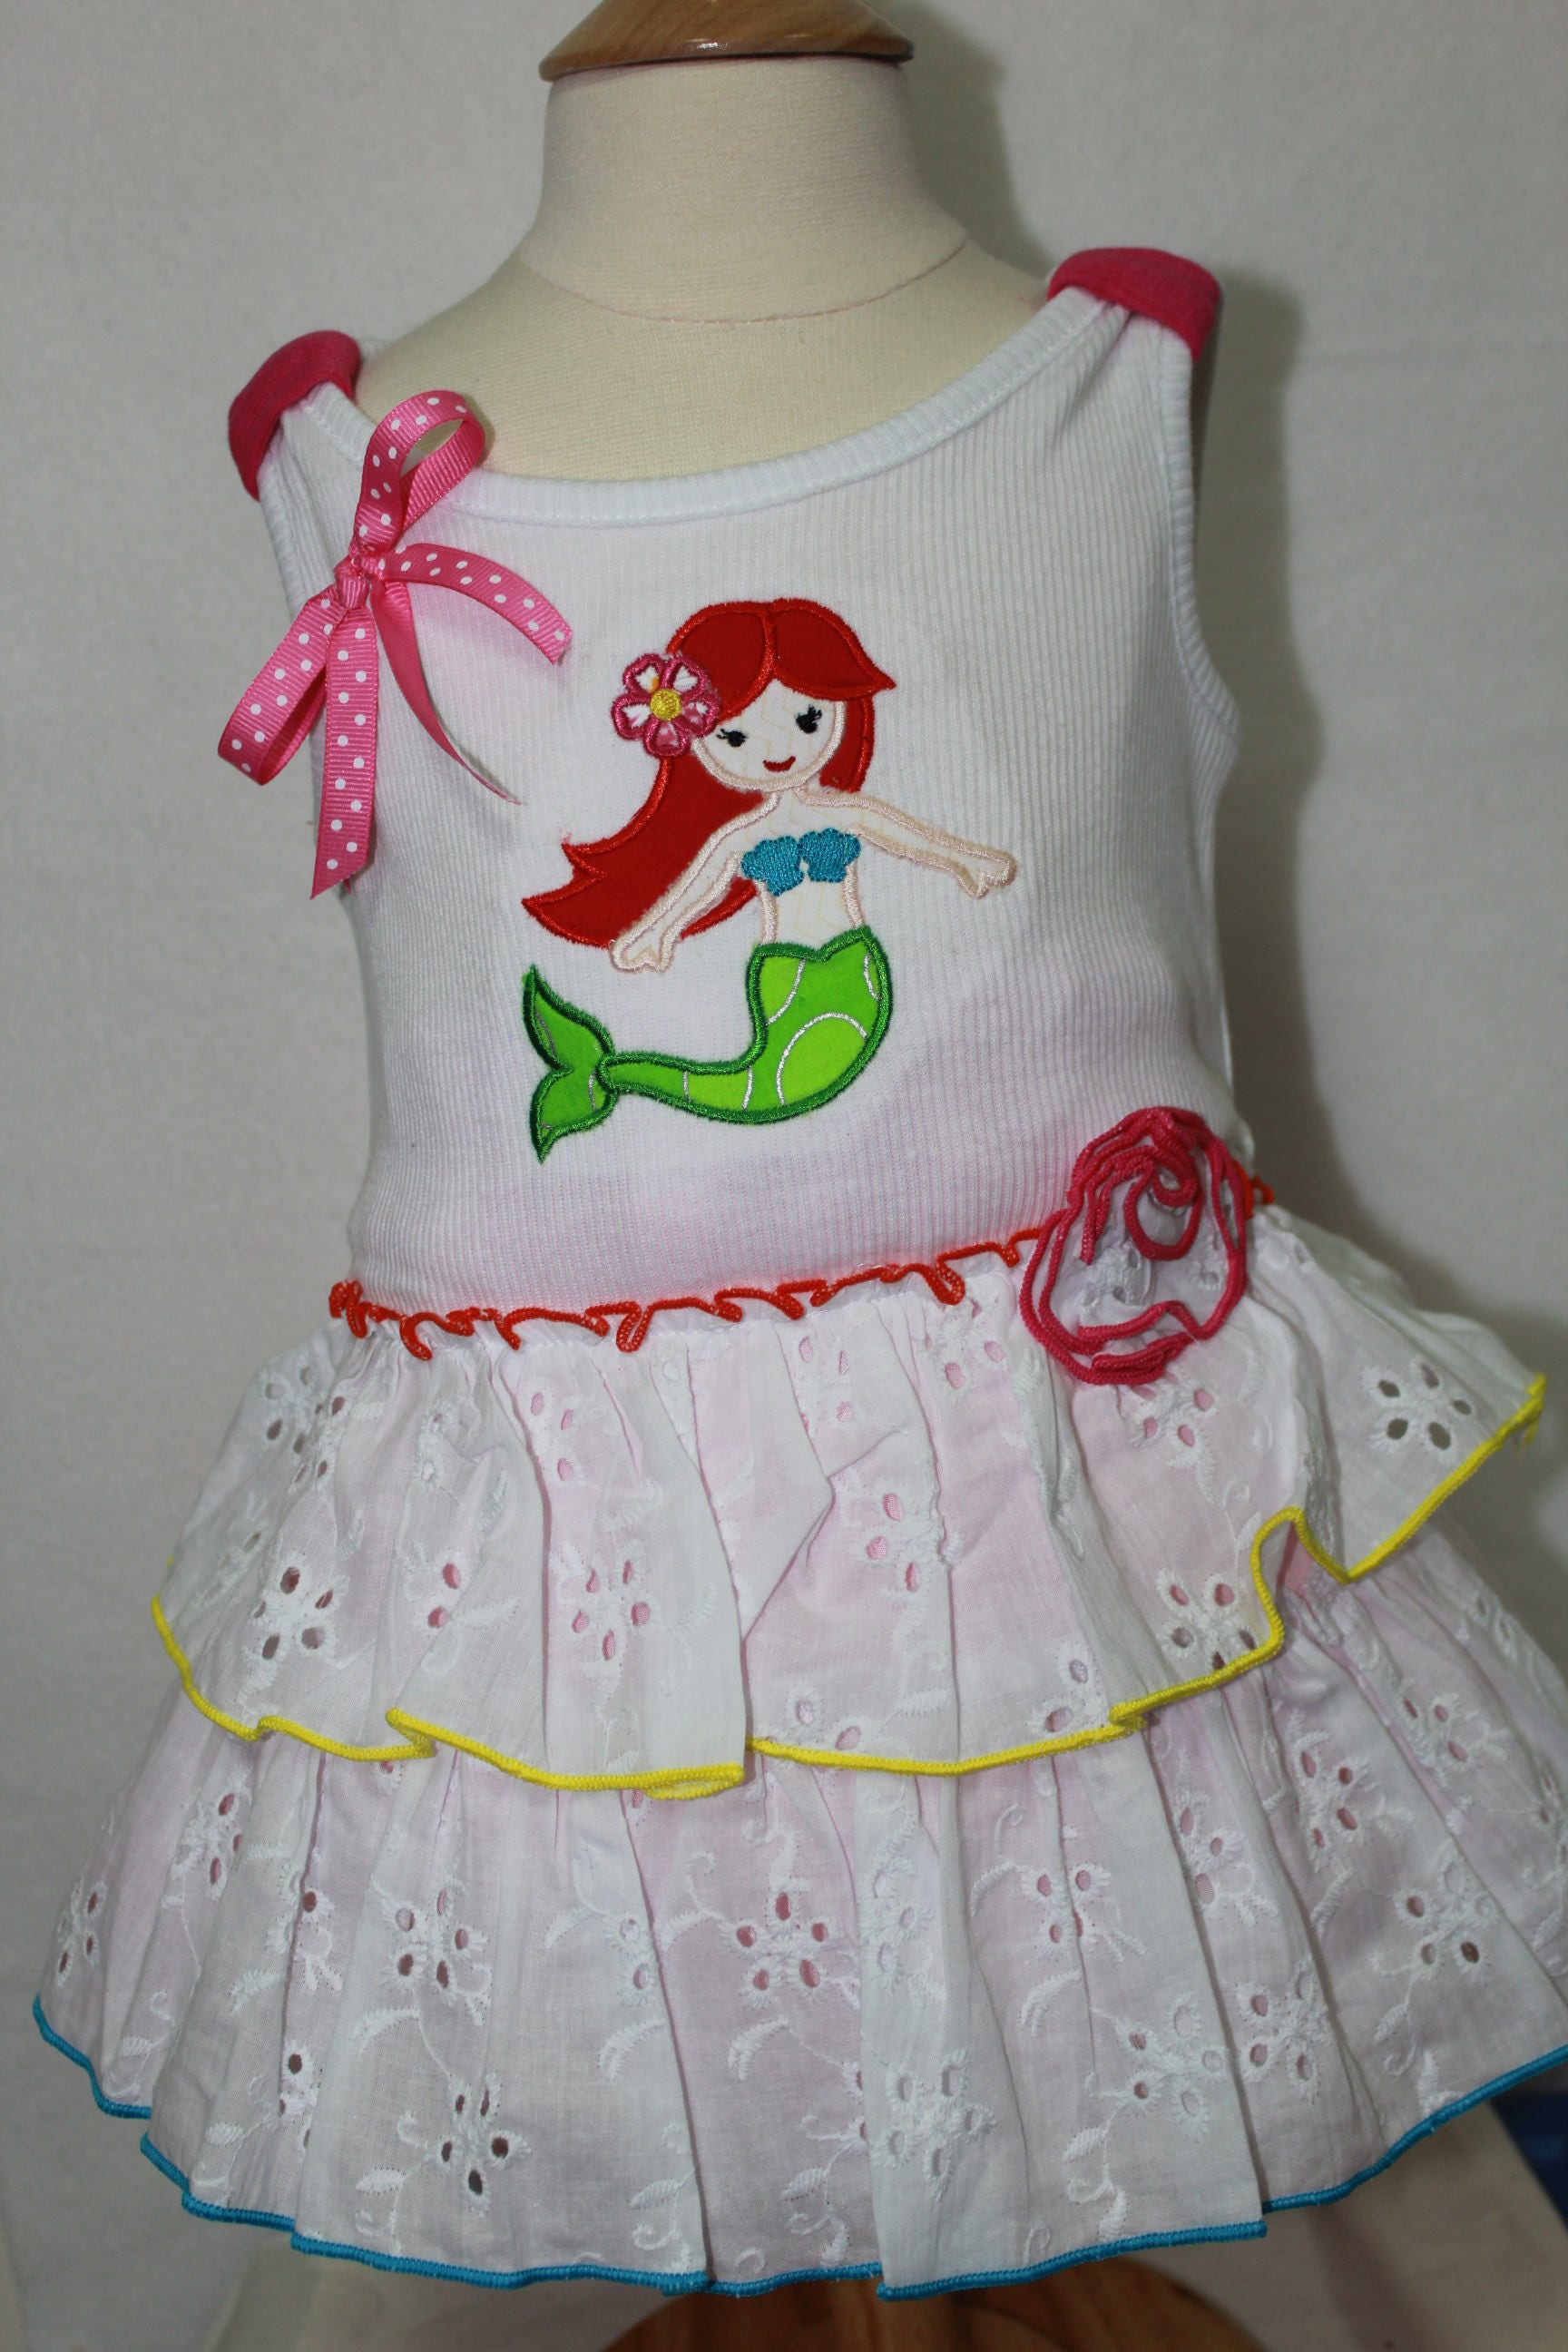 Little Mermaid mermaid Dress summer dress Disney beach handmade